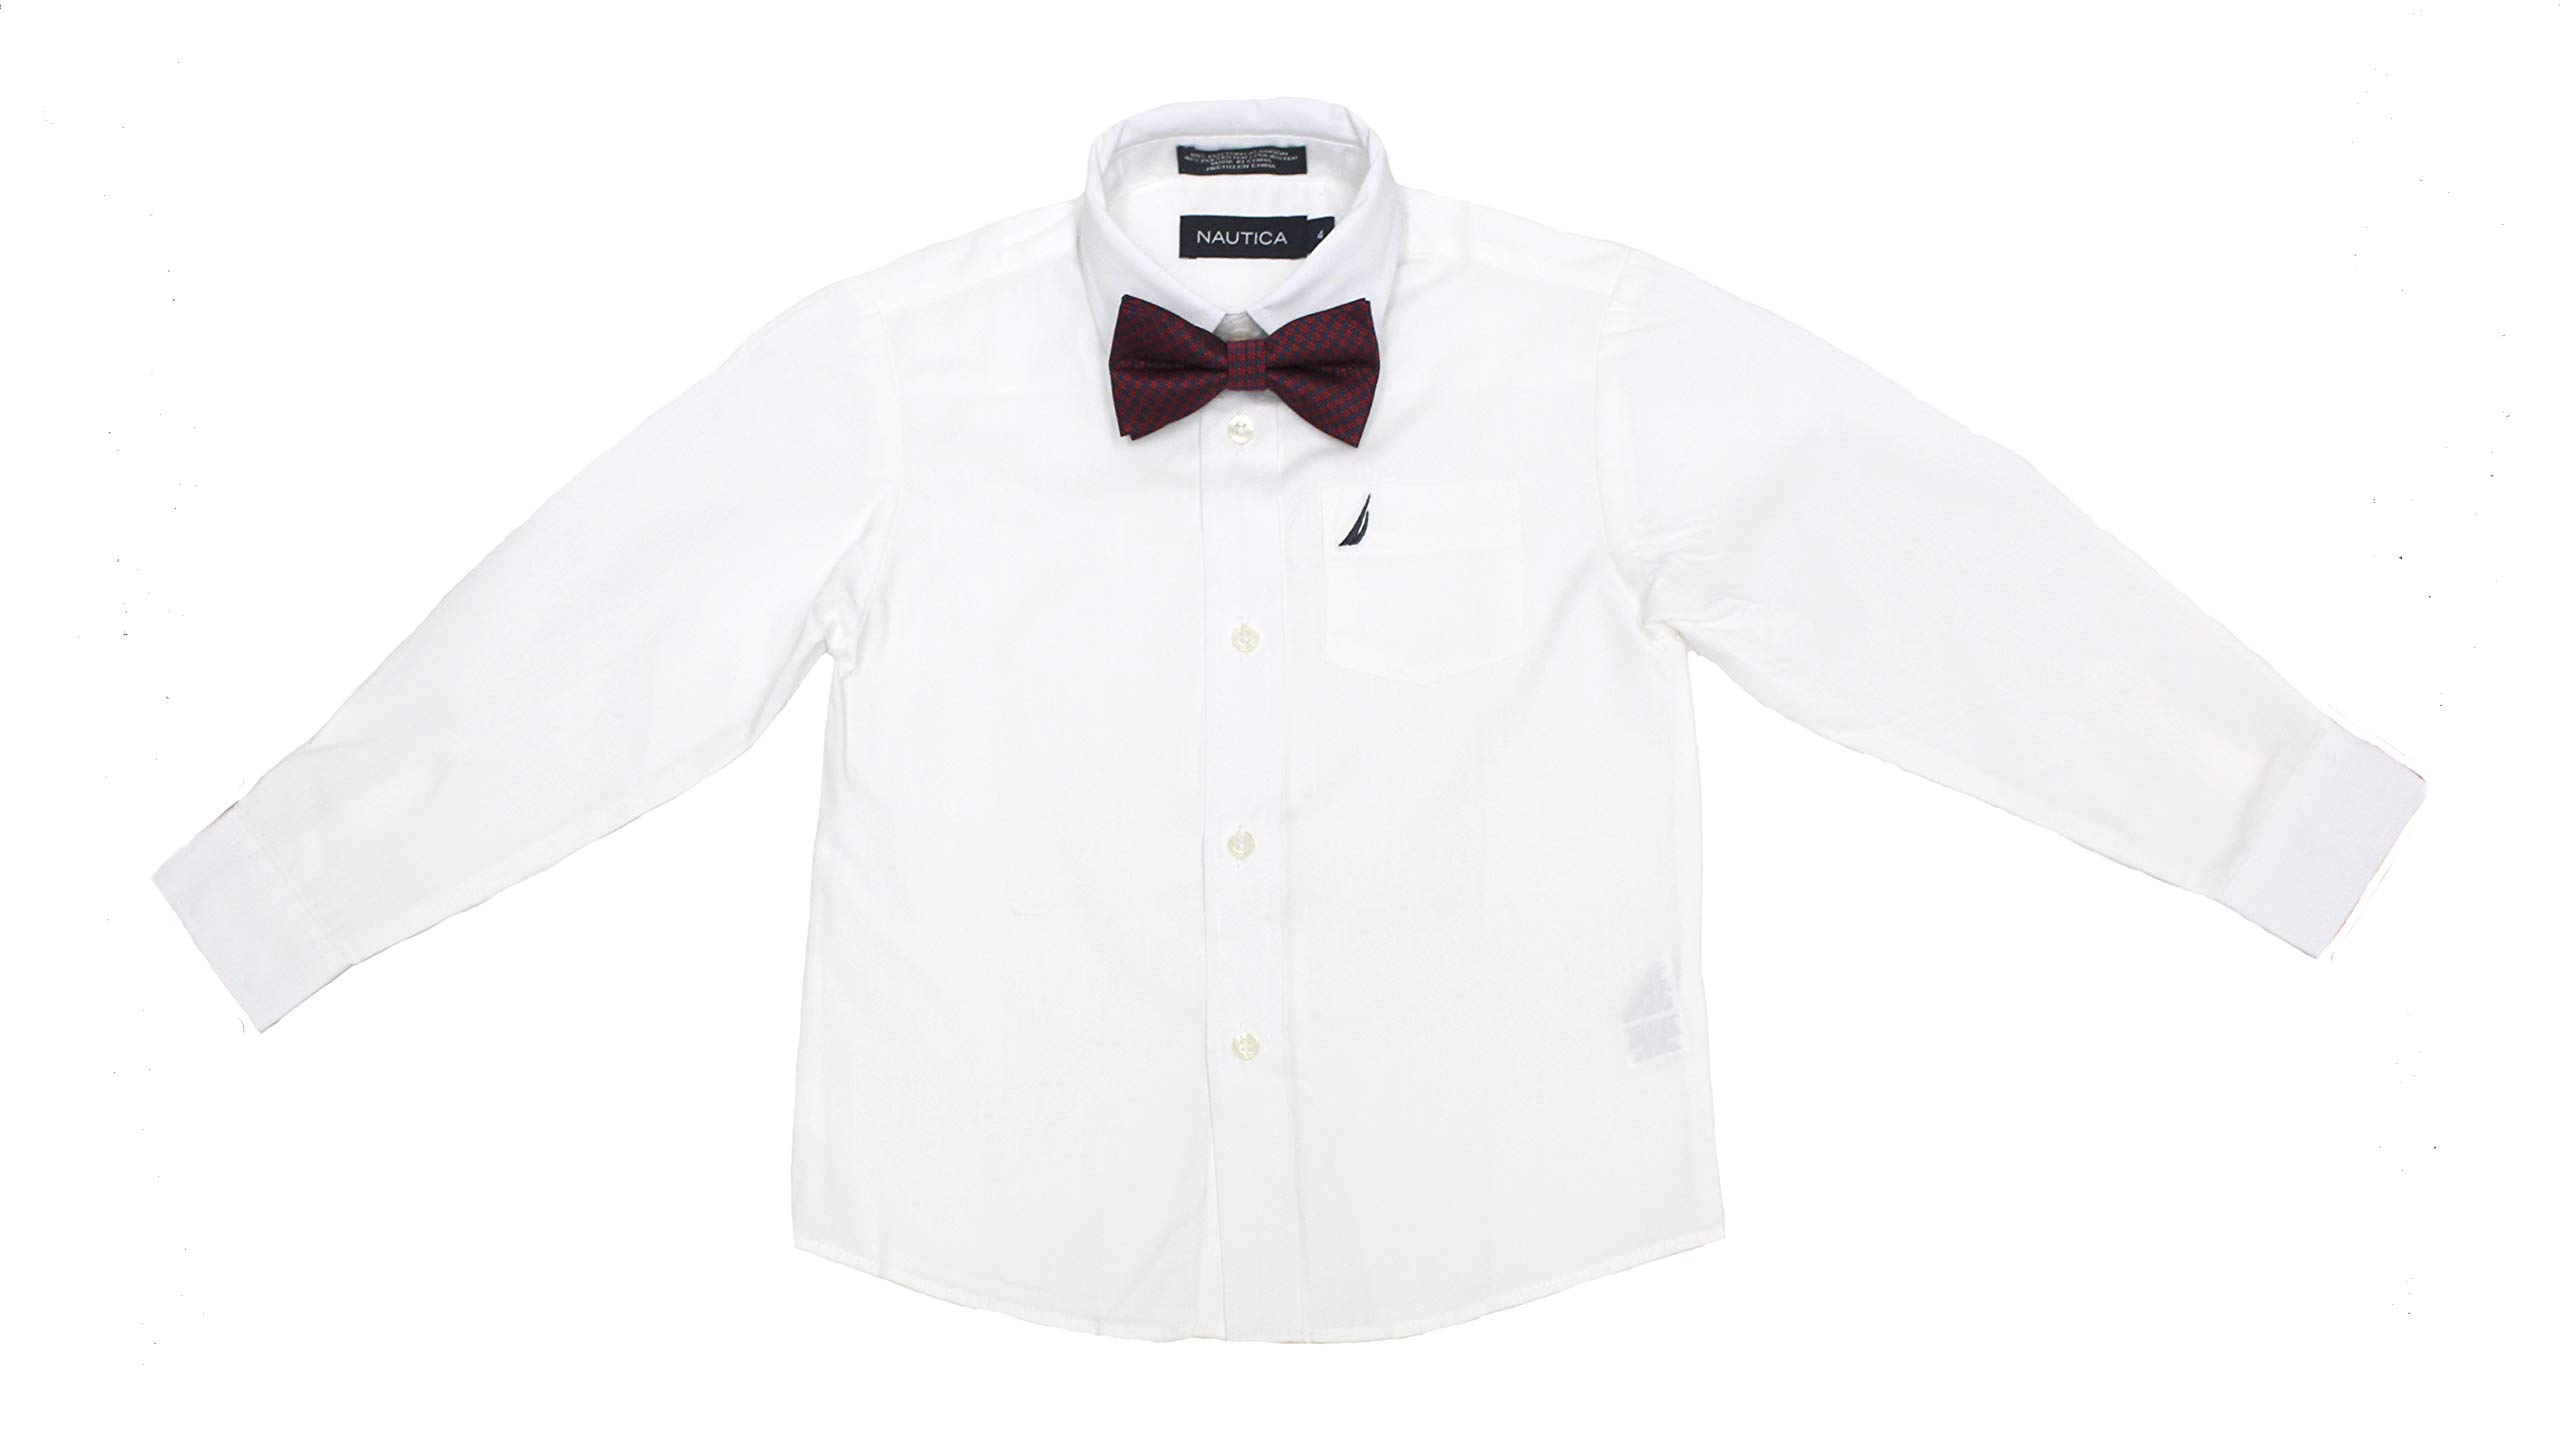 Nautica Little Boys' Long Sleeve Dress Shirt with Bow Tie, White, 4